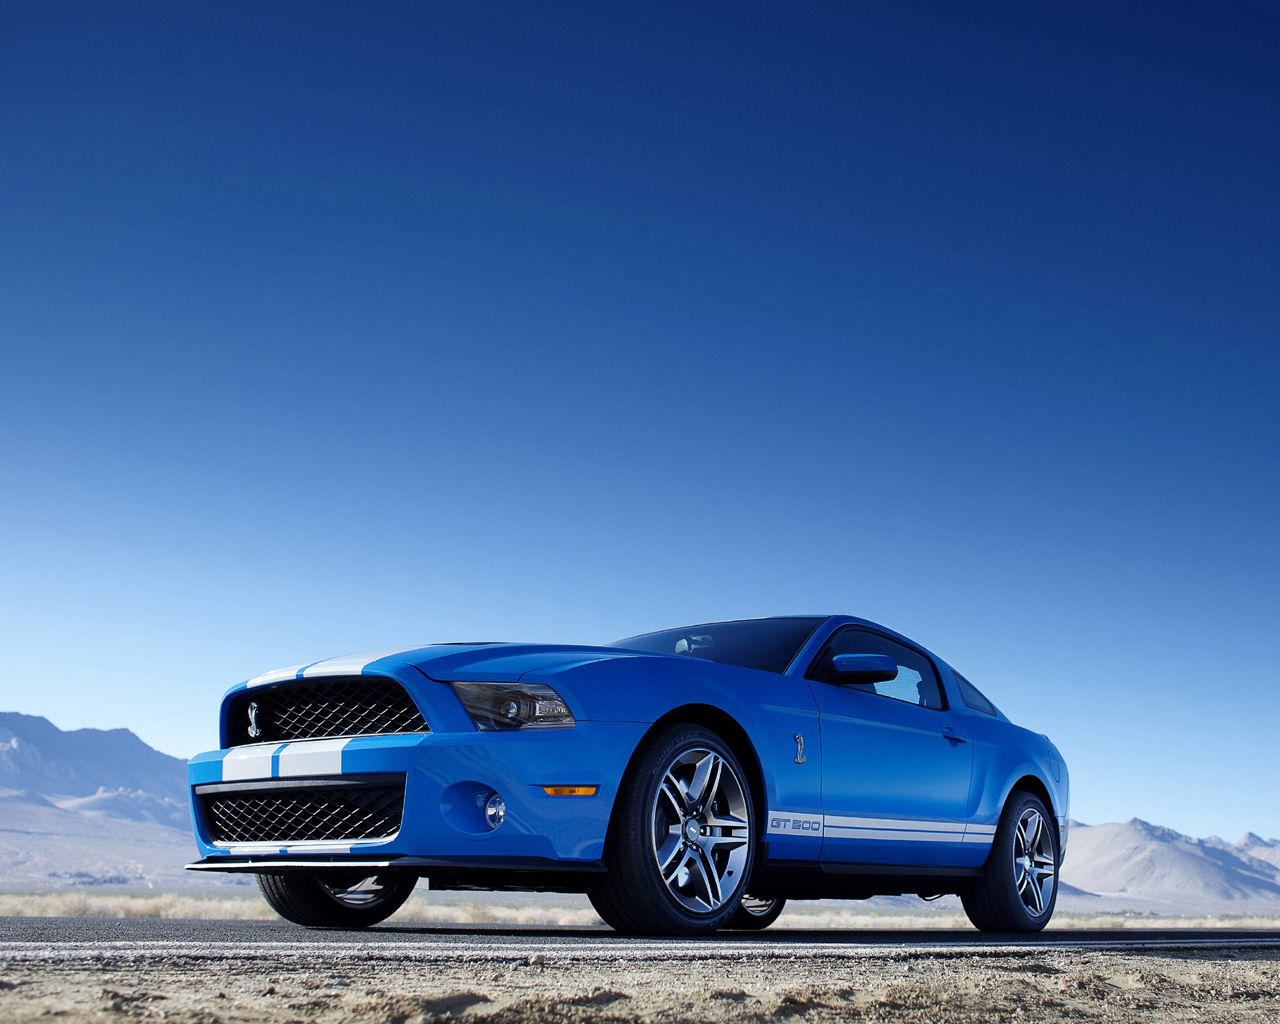 Ford Mustang Shelby GT500 Convertible Free 1280x1024